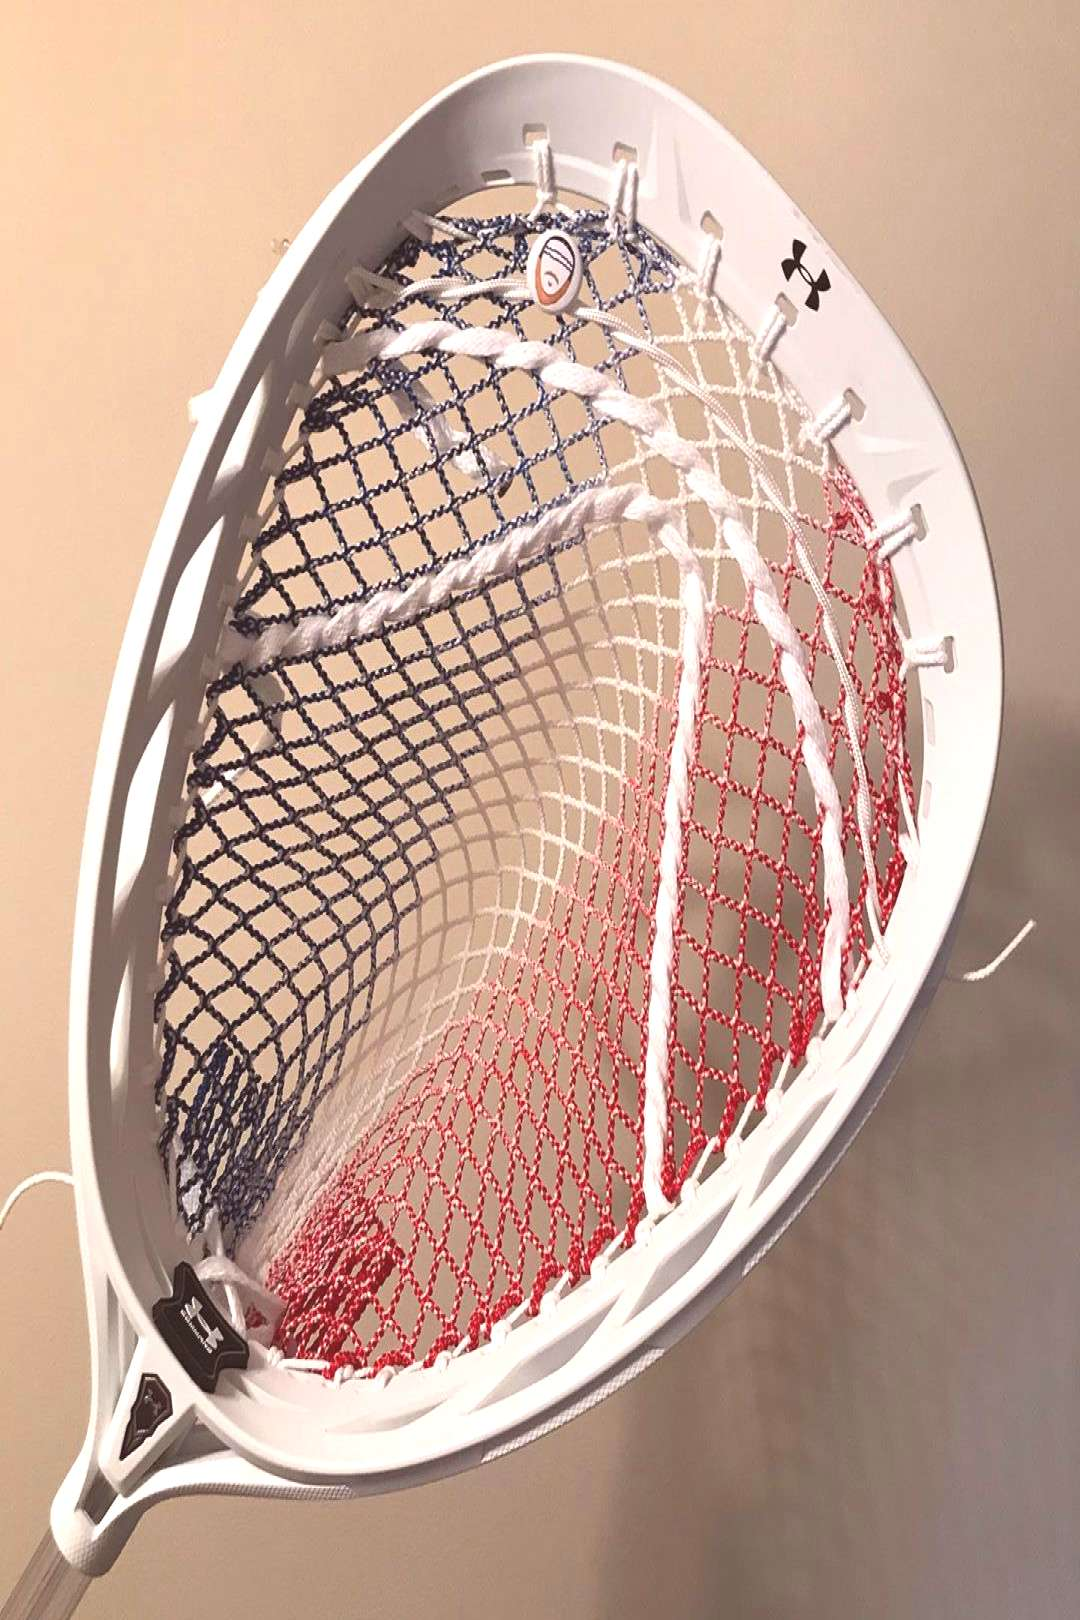 RedBeard Lacrosse on April 21 2020 and 1 person